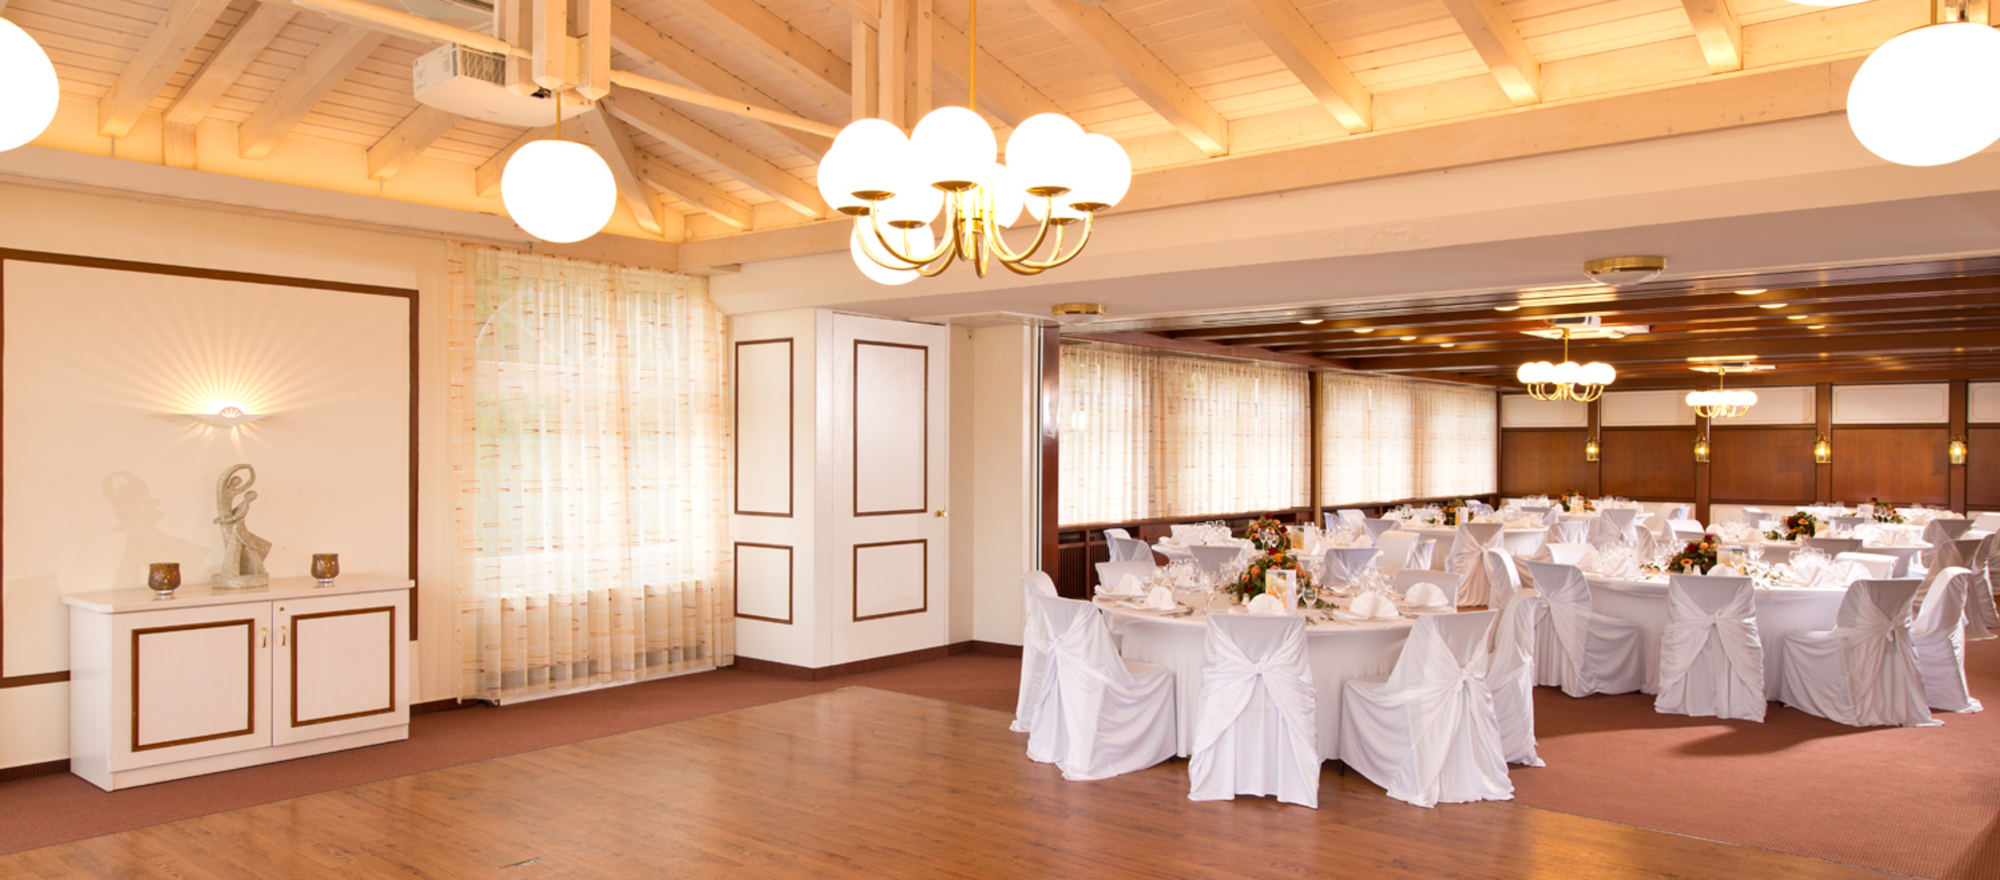 Spacious bright hall with dance floor at the 4-star Ringhotel Schwarzwald-Hotel Silberkoenig in Gutach-Bleibach